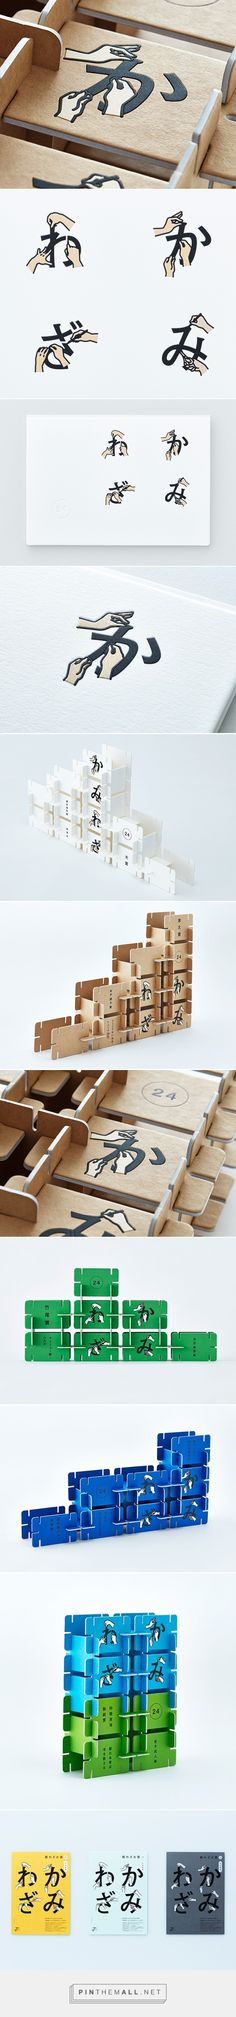 kamiwaza paper craft awards identity by 6D - created via https://pinthemall.net